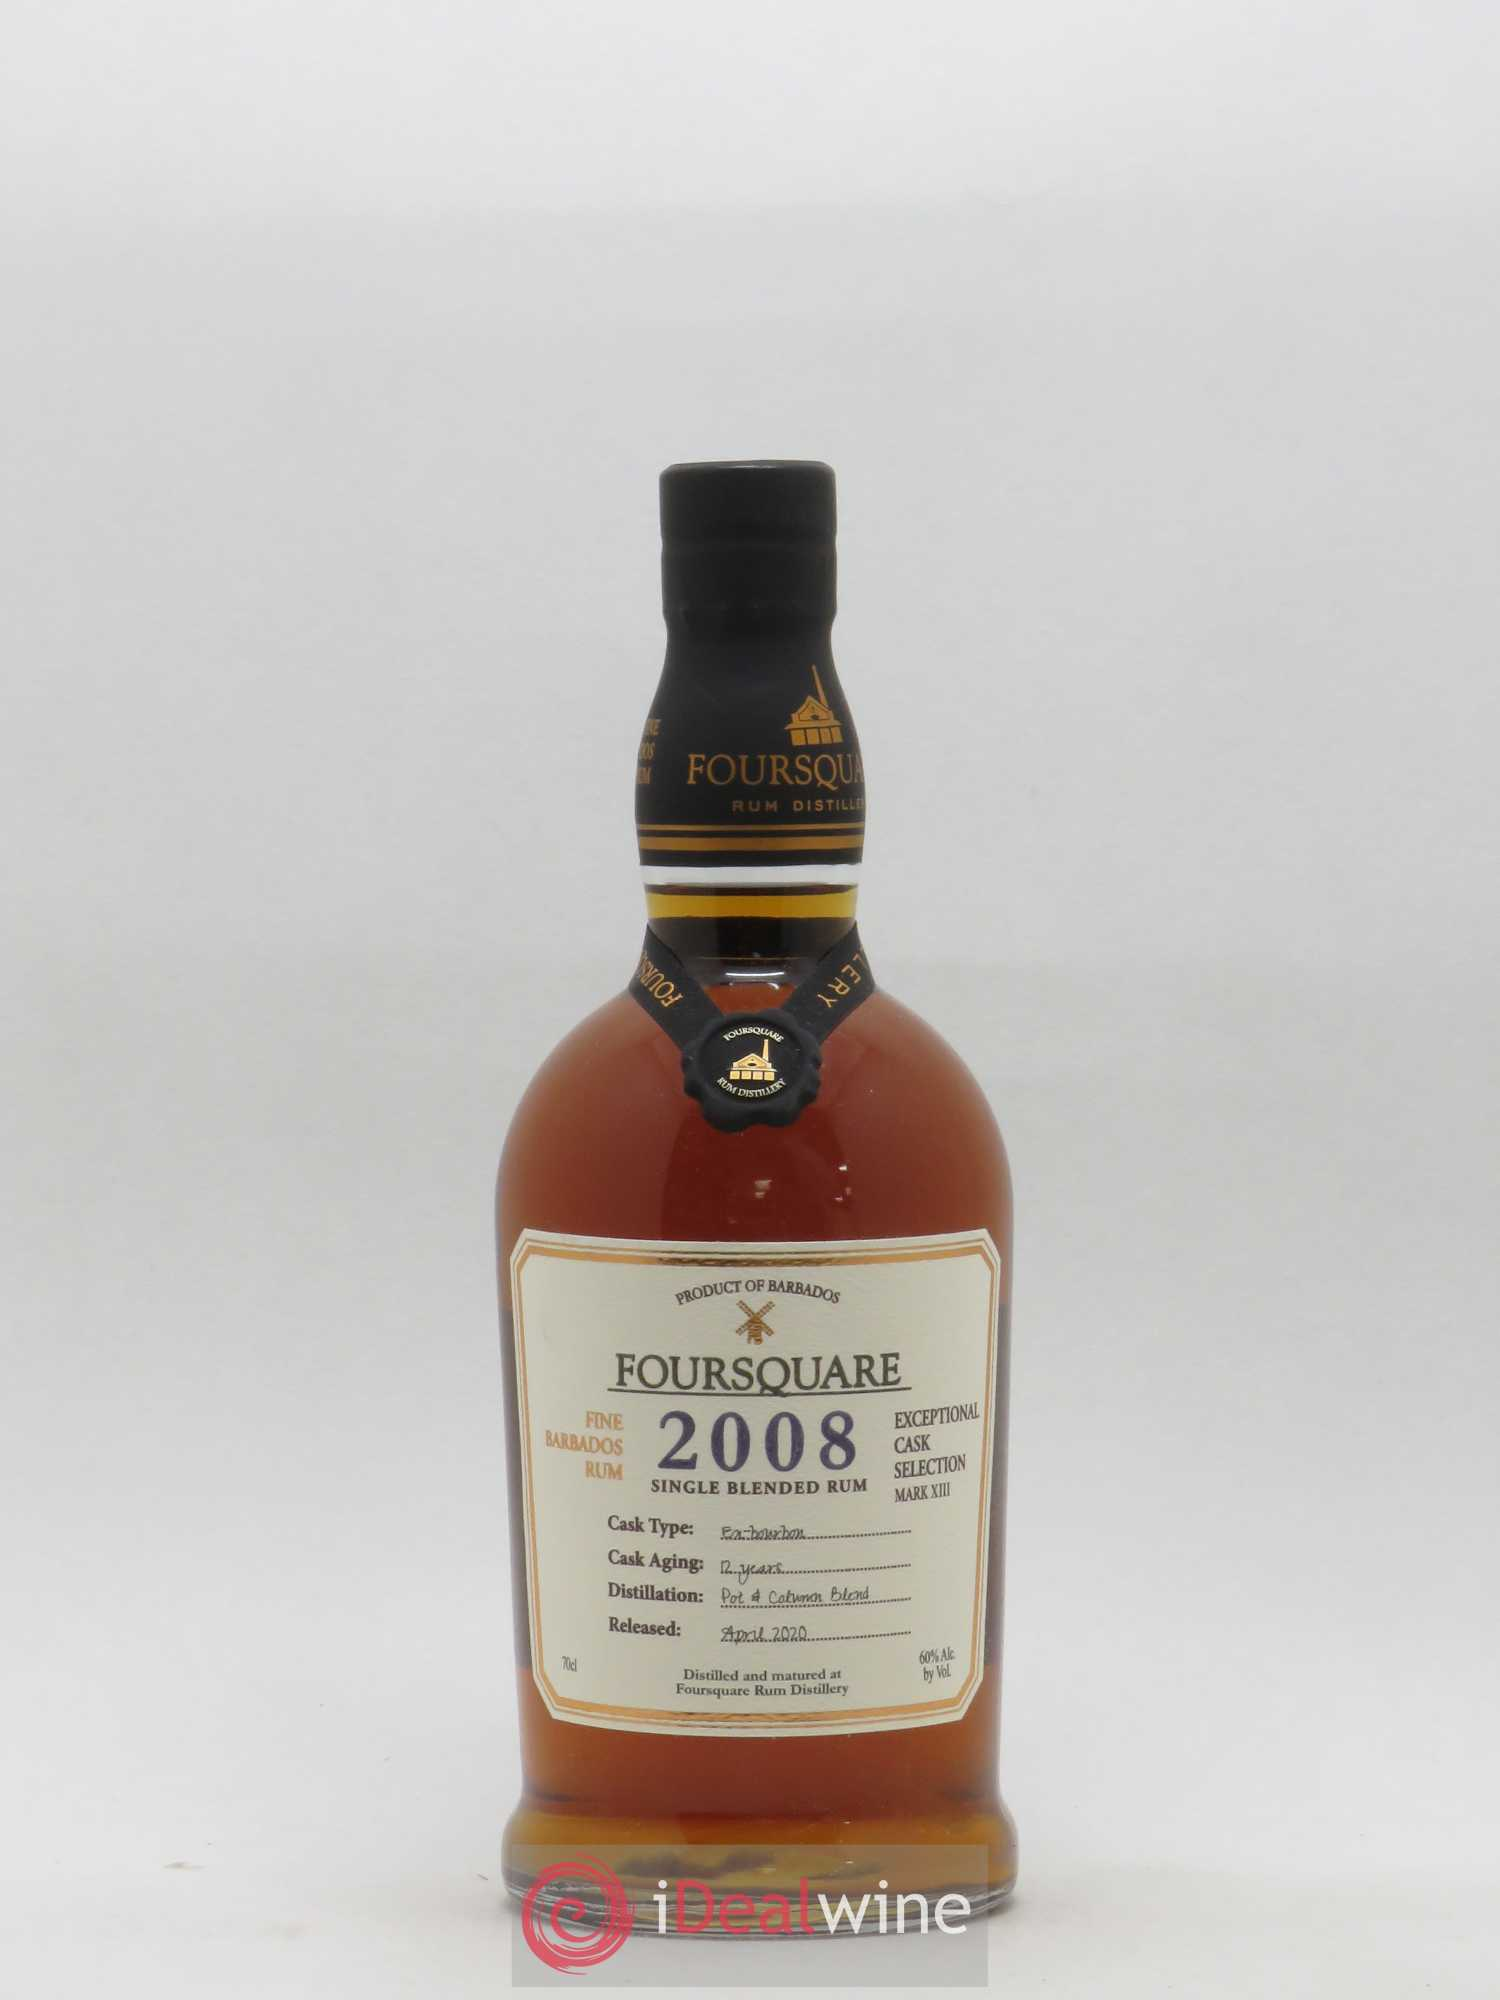 Rhum Barbade Foursquare 2008 12YO Exceptional Cask Selection Mark XIII Ex-Bourbon cask bottled in 2020 2008 - Lot of 1 Bottle